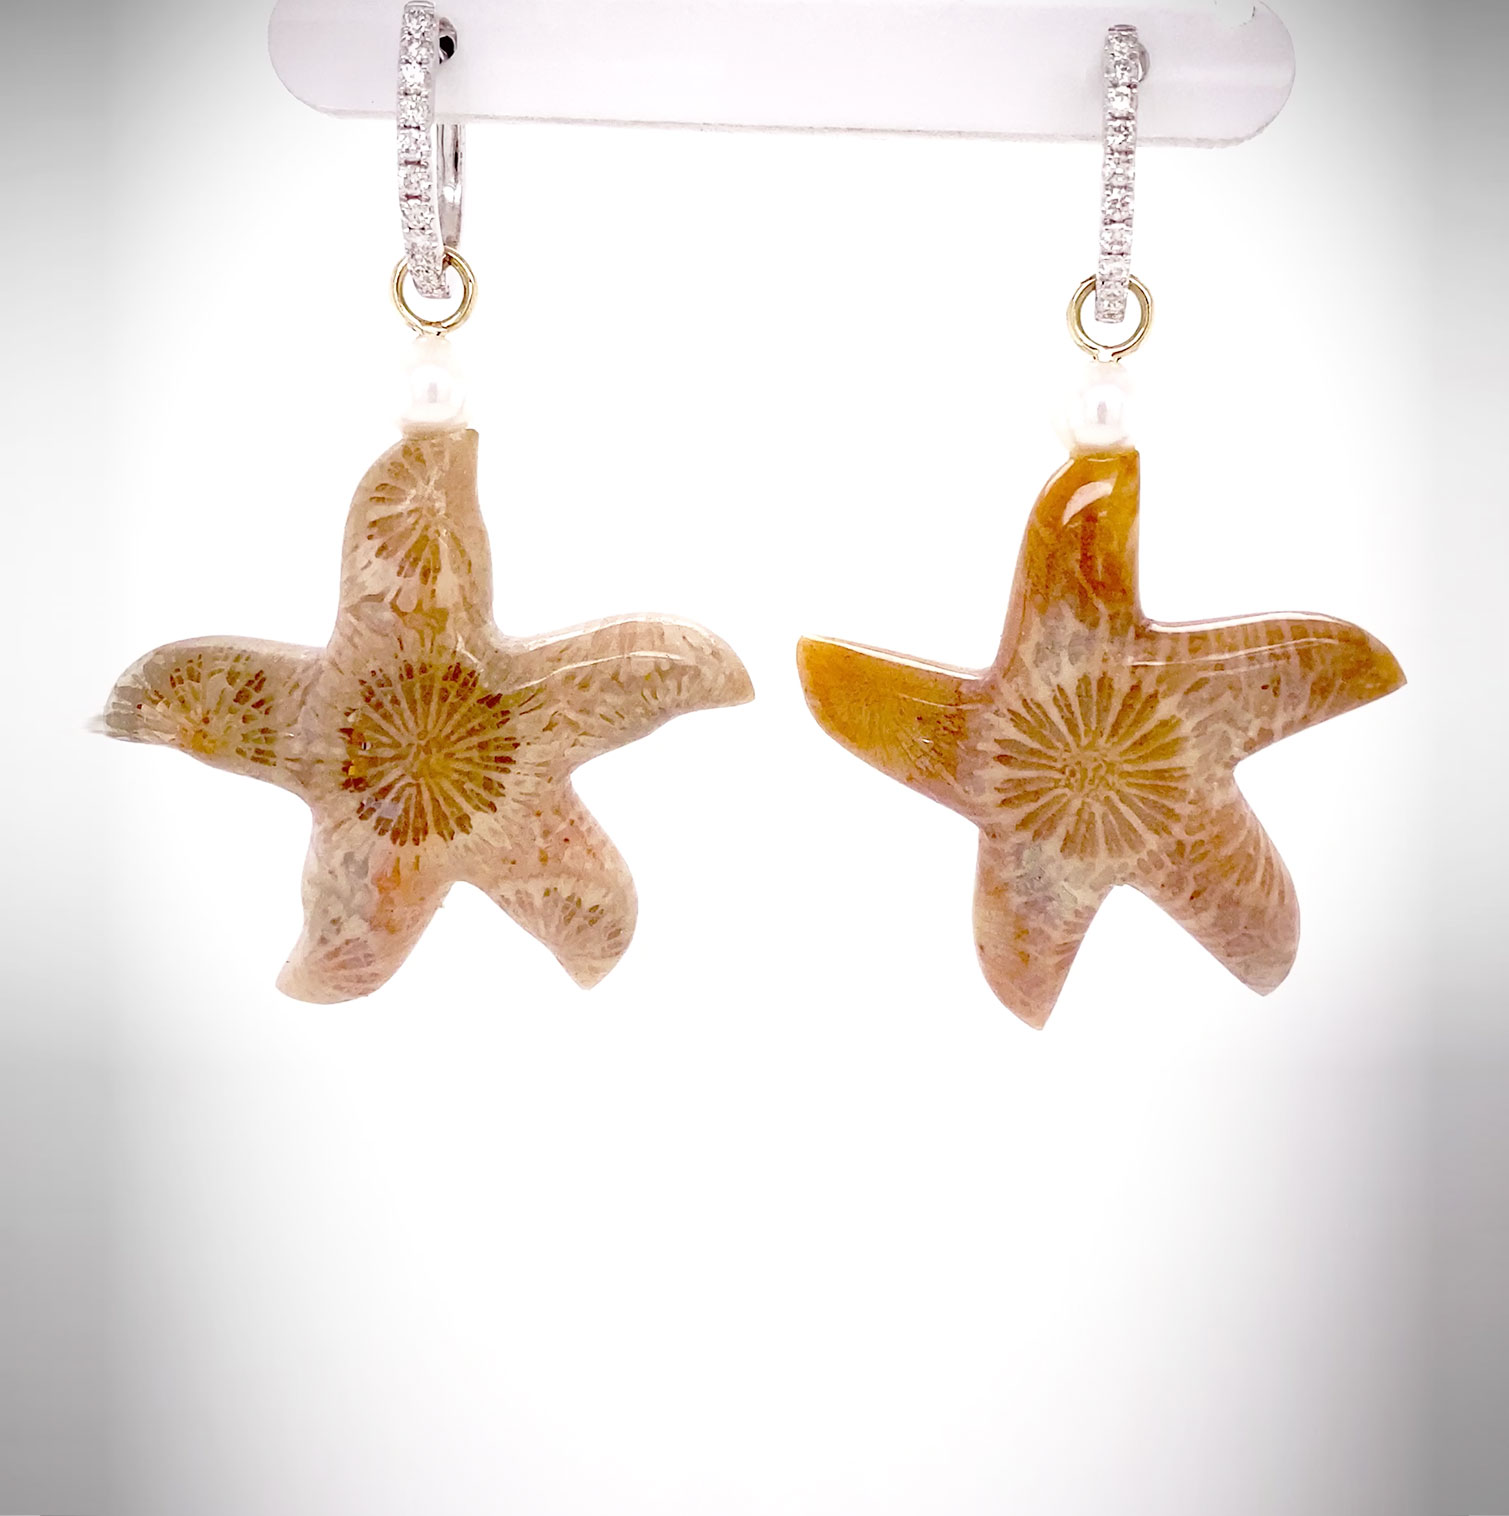 One-of-a-kind ear pendants set with starfish carved from Indonesian Fossilized Coral and accented with Akoya Pearls